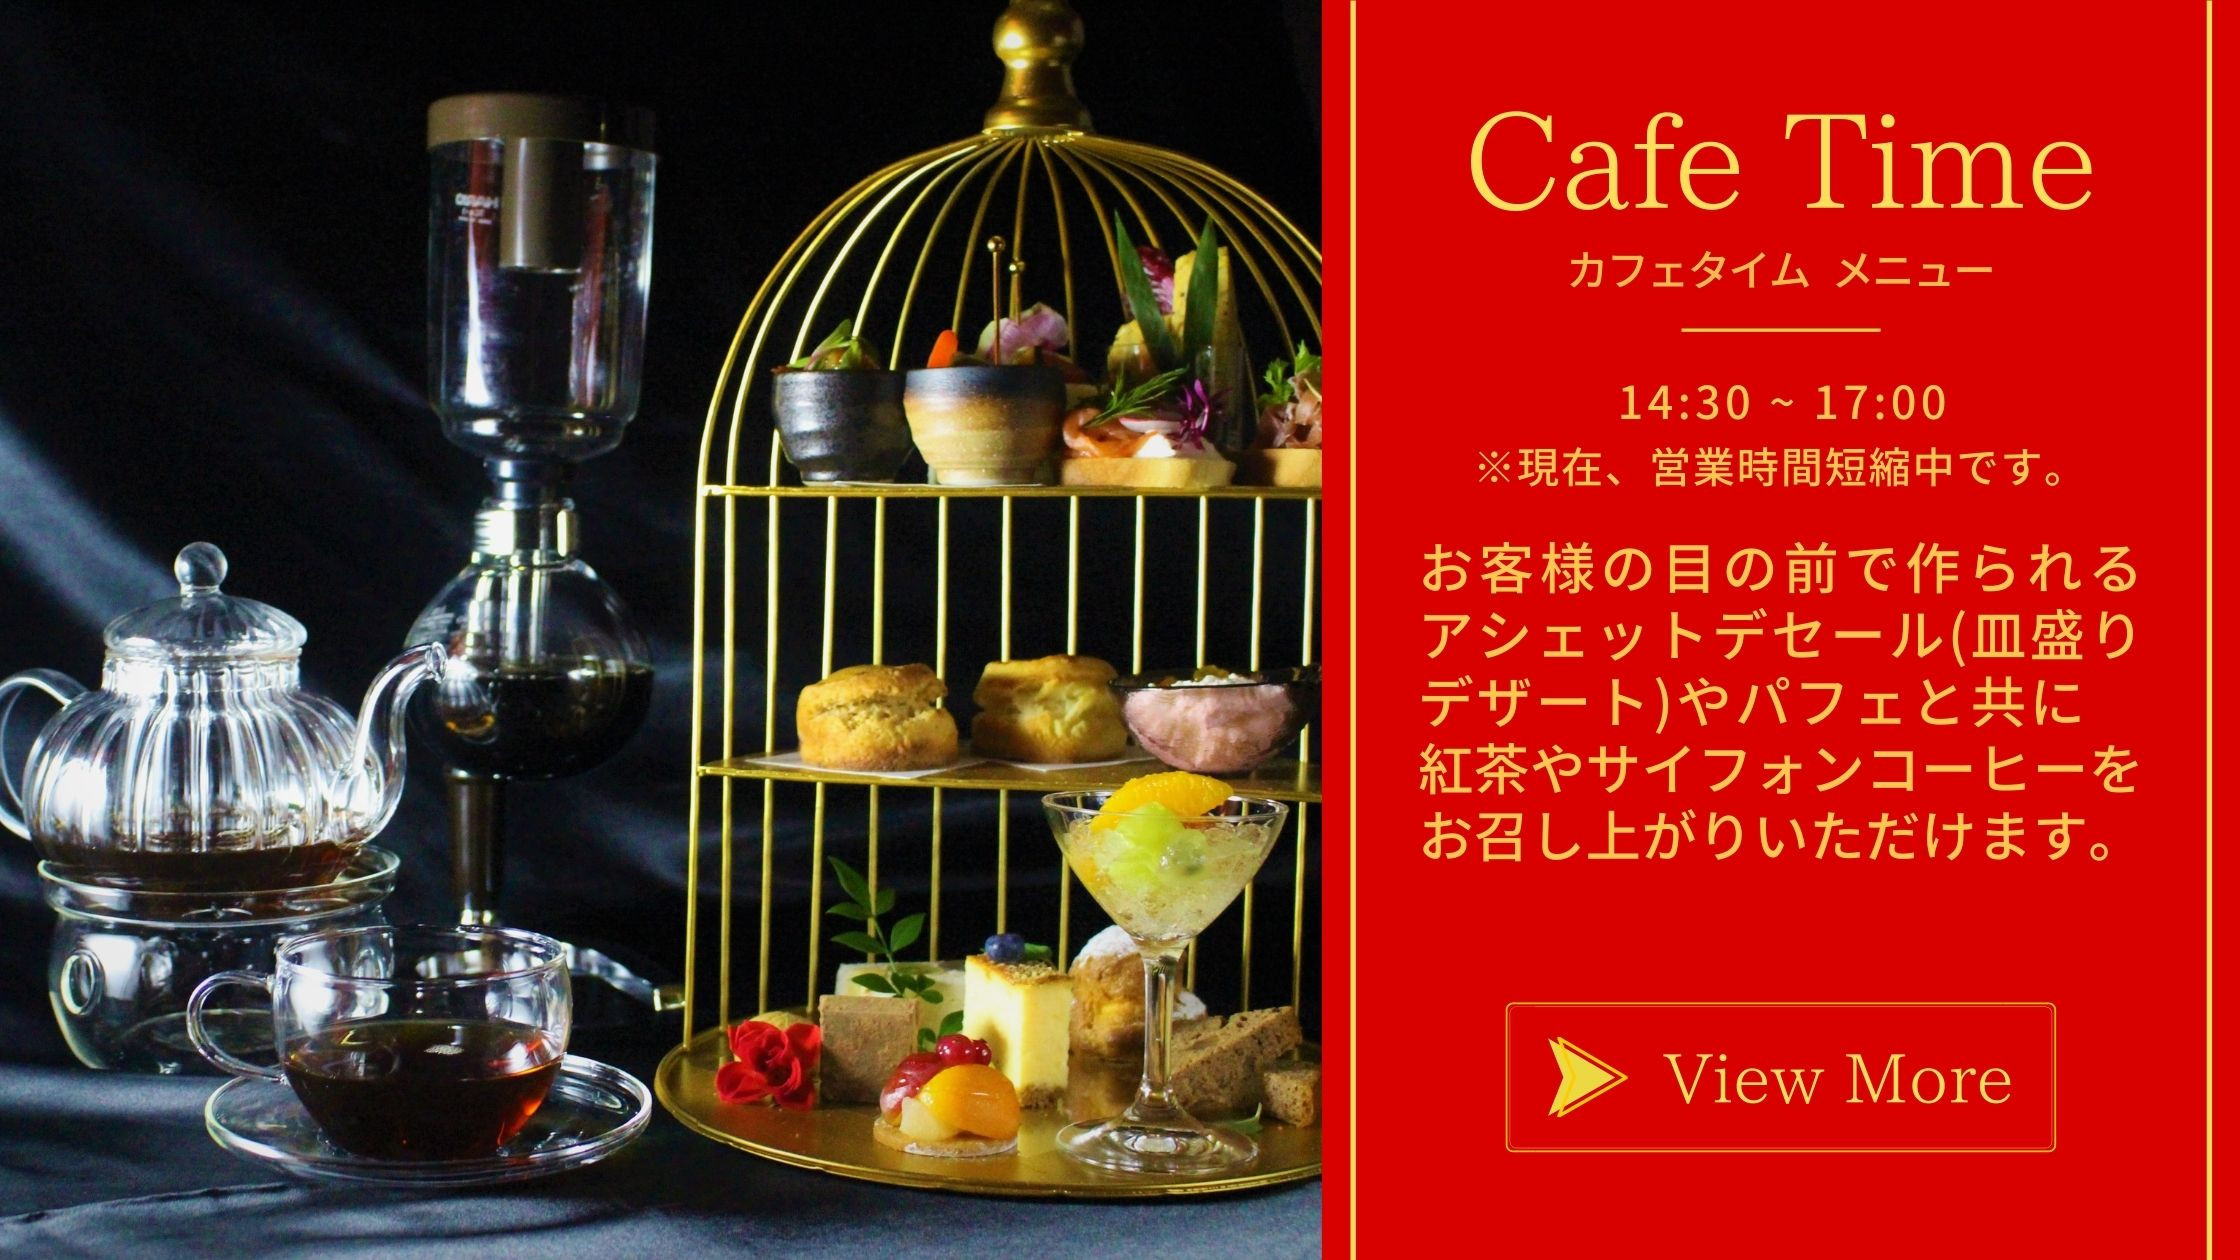 CafeTime_image_sp